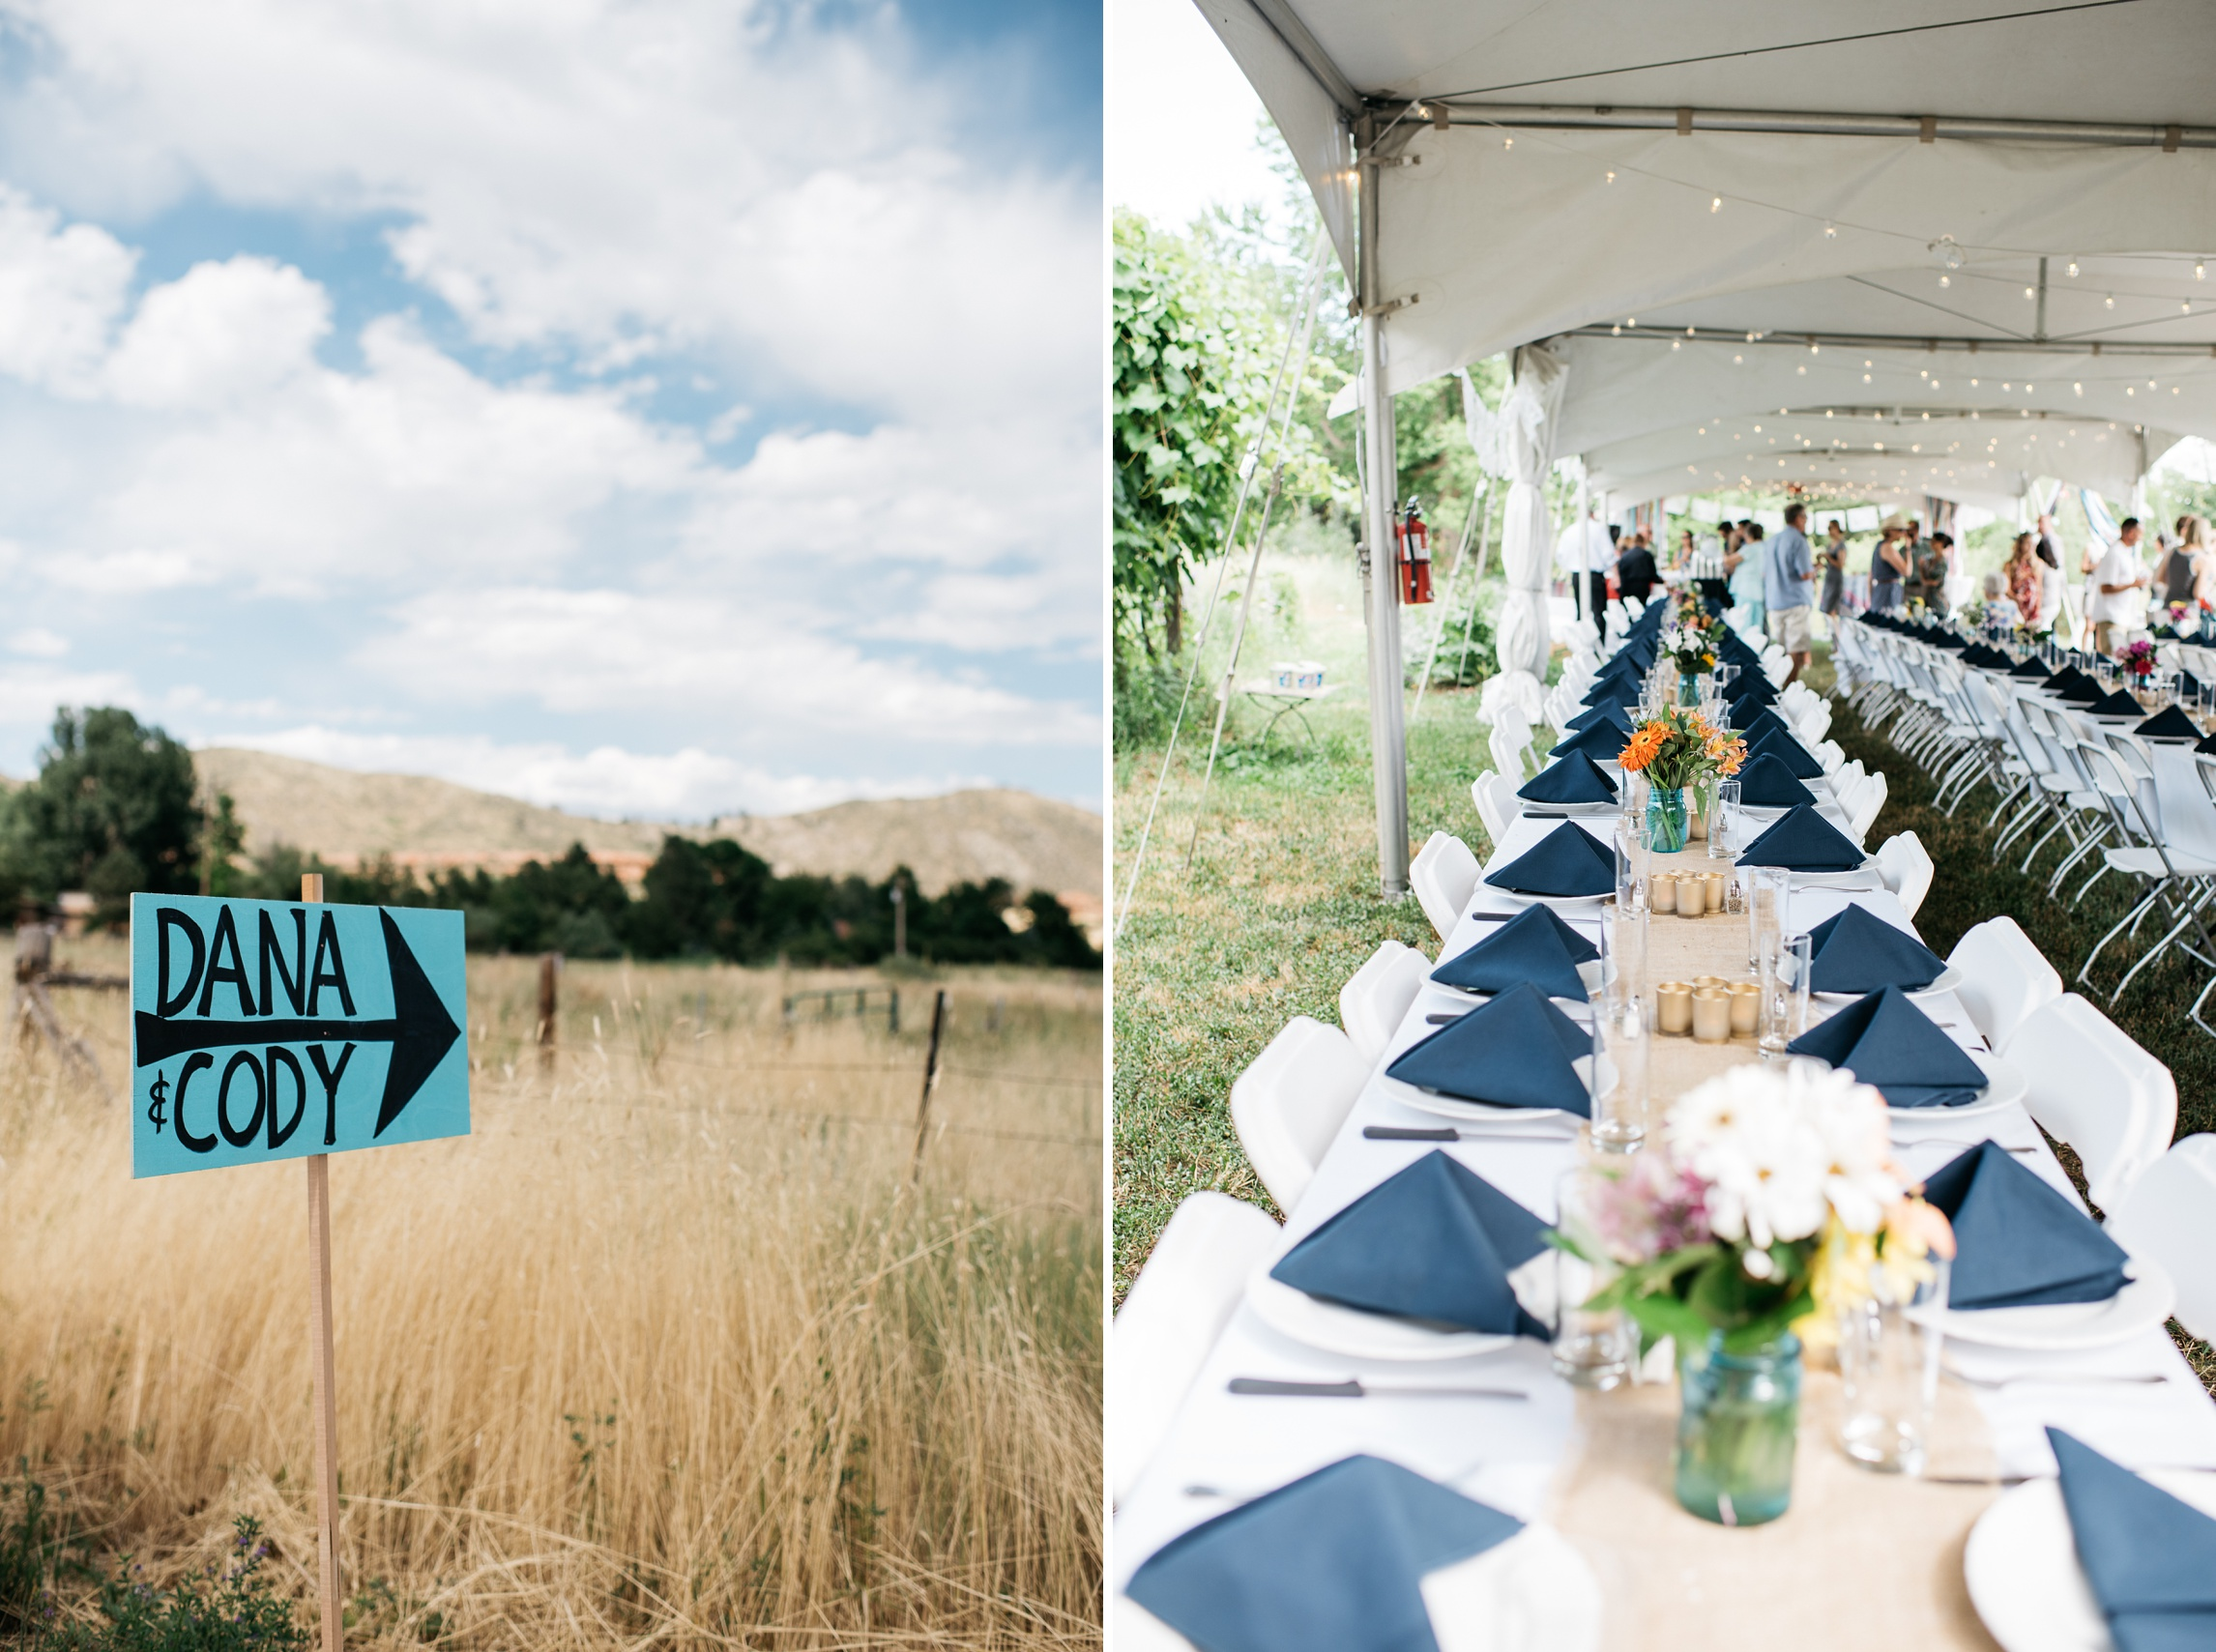 Signage and the party at a wedding reception outside of Fort Collins, Colorado. Wedding detail photography by Sonja Salzburg of Sonja K Photography.